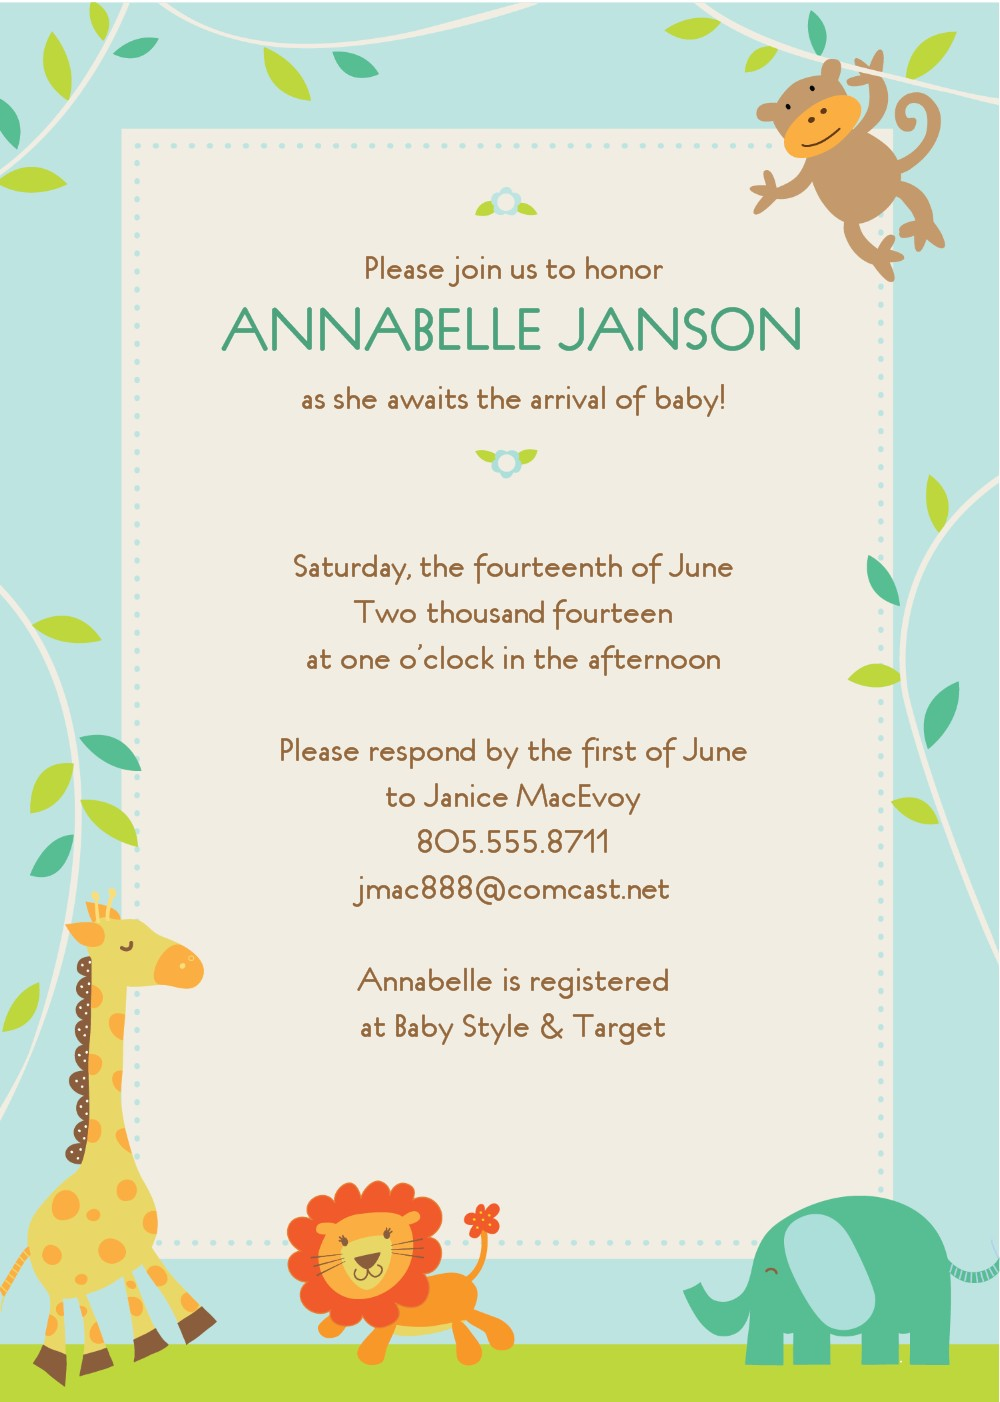 Full Size of Baby Shower:sturdy Baby Shower Invitation Template Image Concepts Baby Shower Invitation Template Full Size Of Colorsbaby Shower Invite Template Free Printable Baby Shower Invite Template Indesign